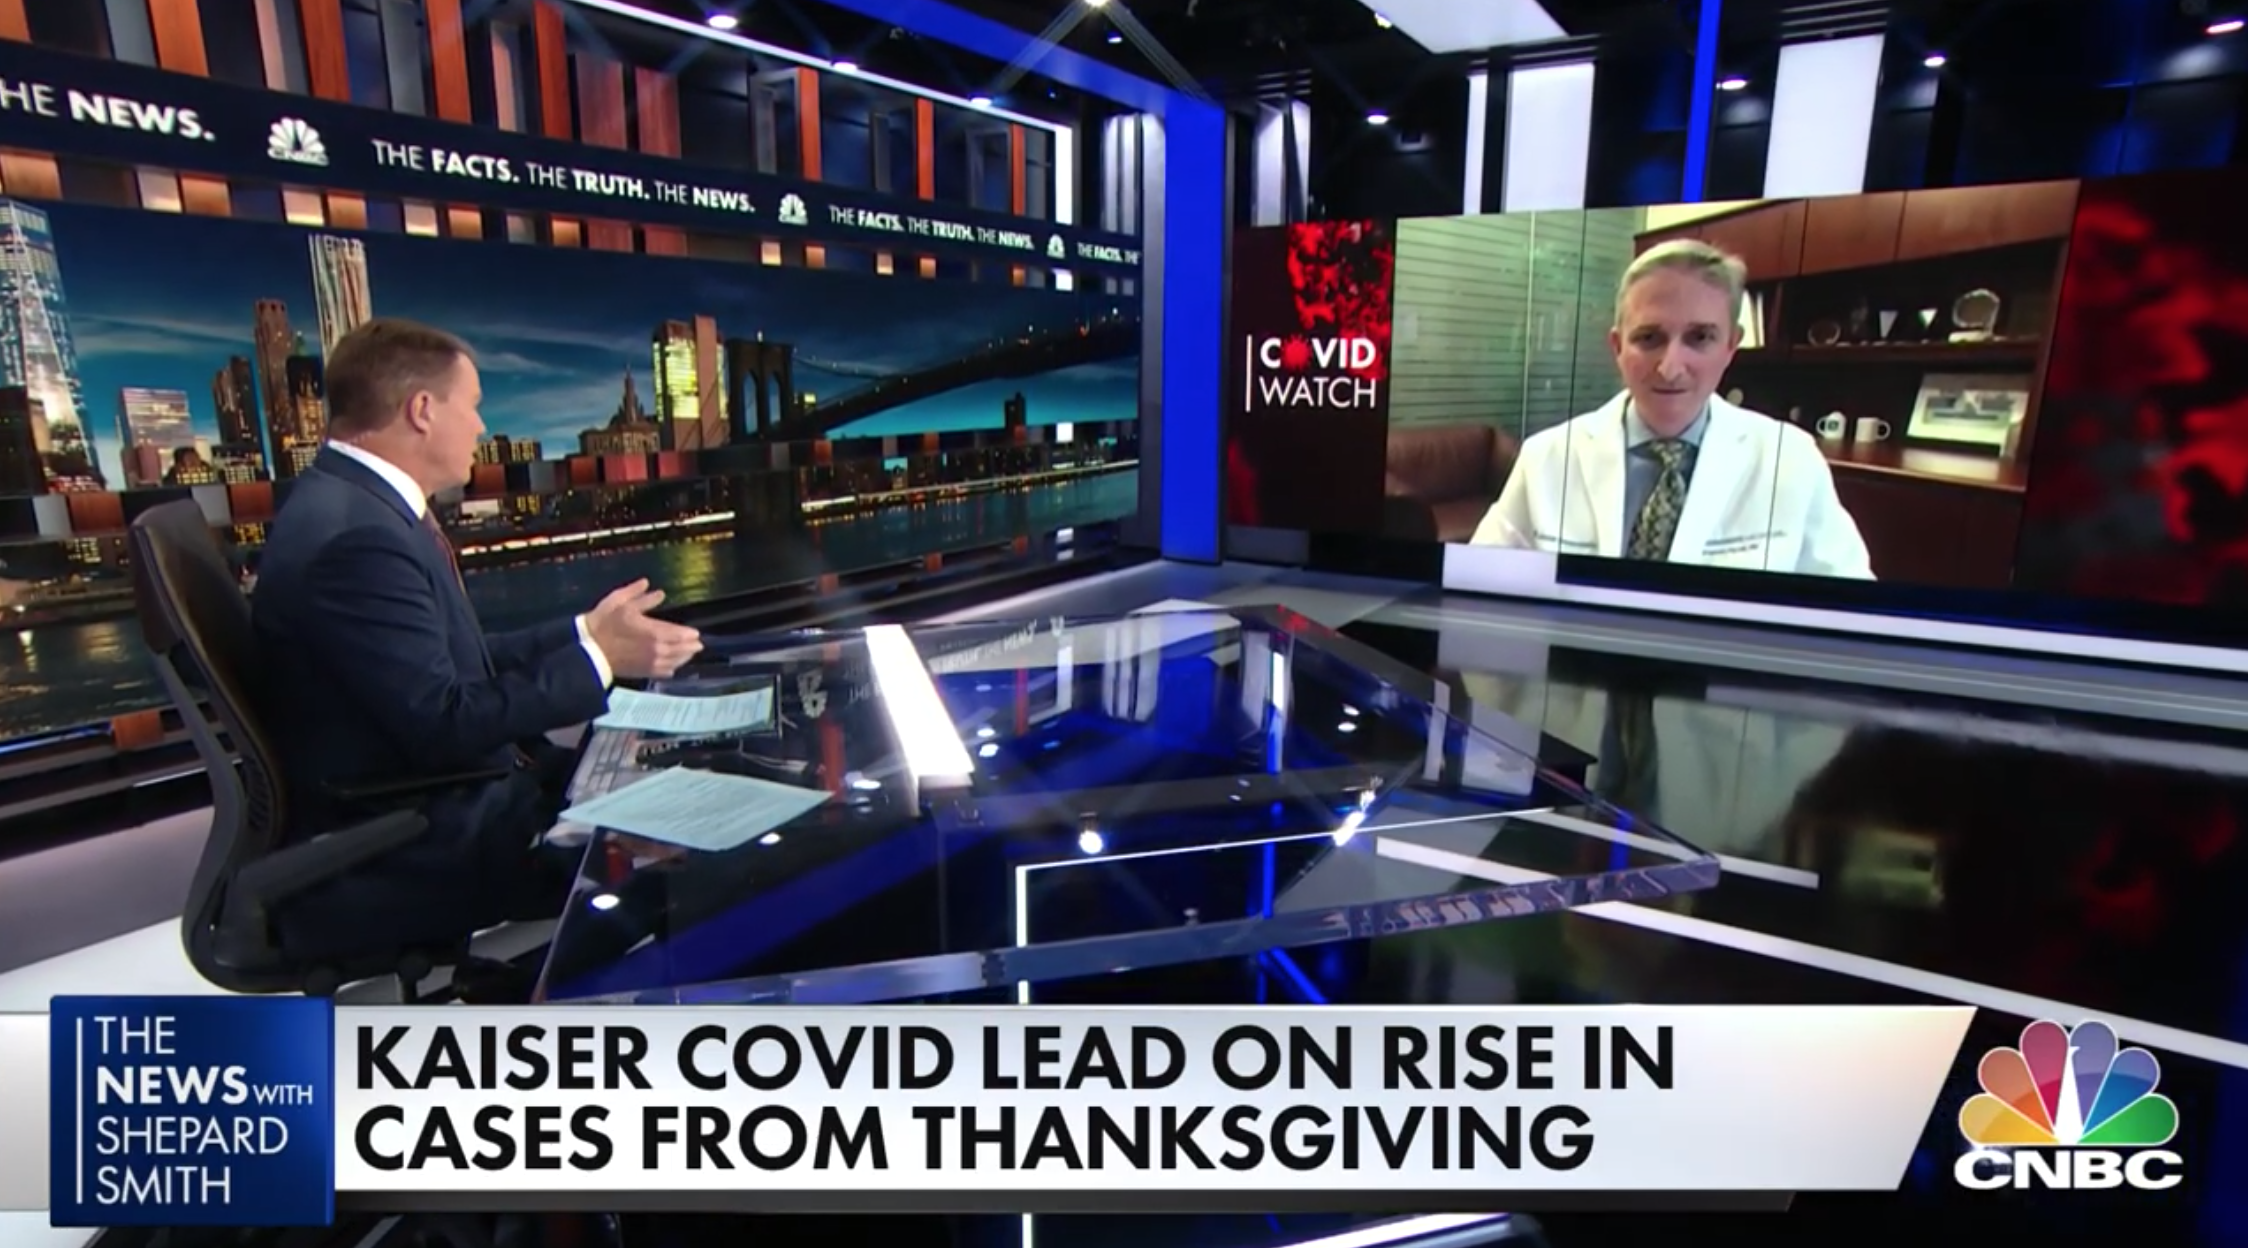 Stephen Parodi, MD, Warns Of Potential Post-holiday COVID-19 Surge On CNBC